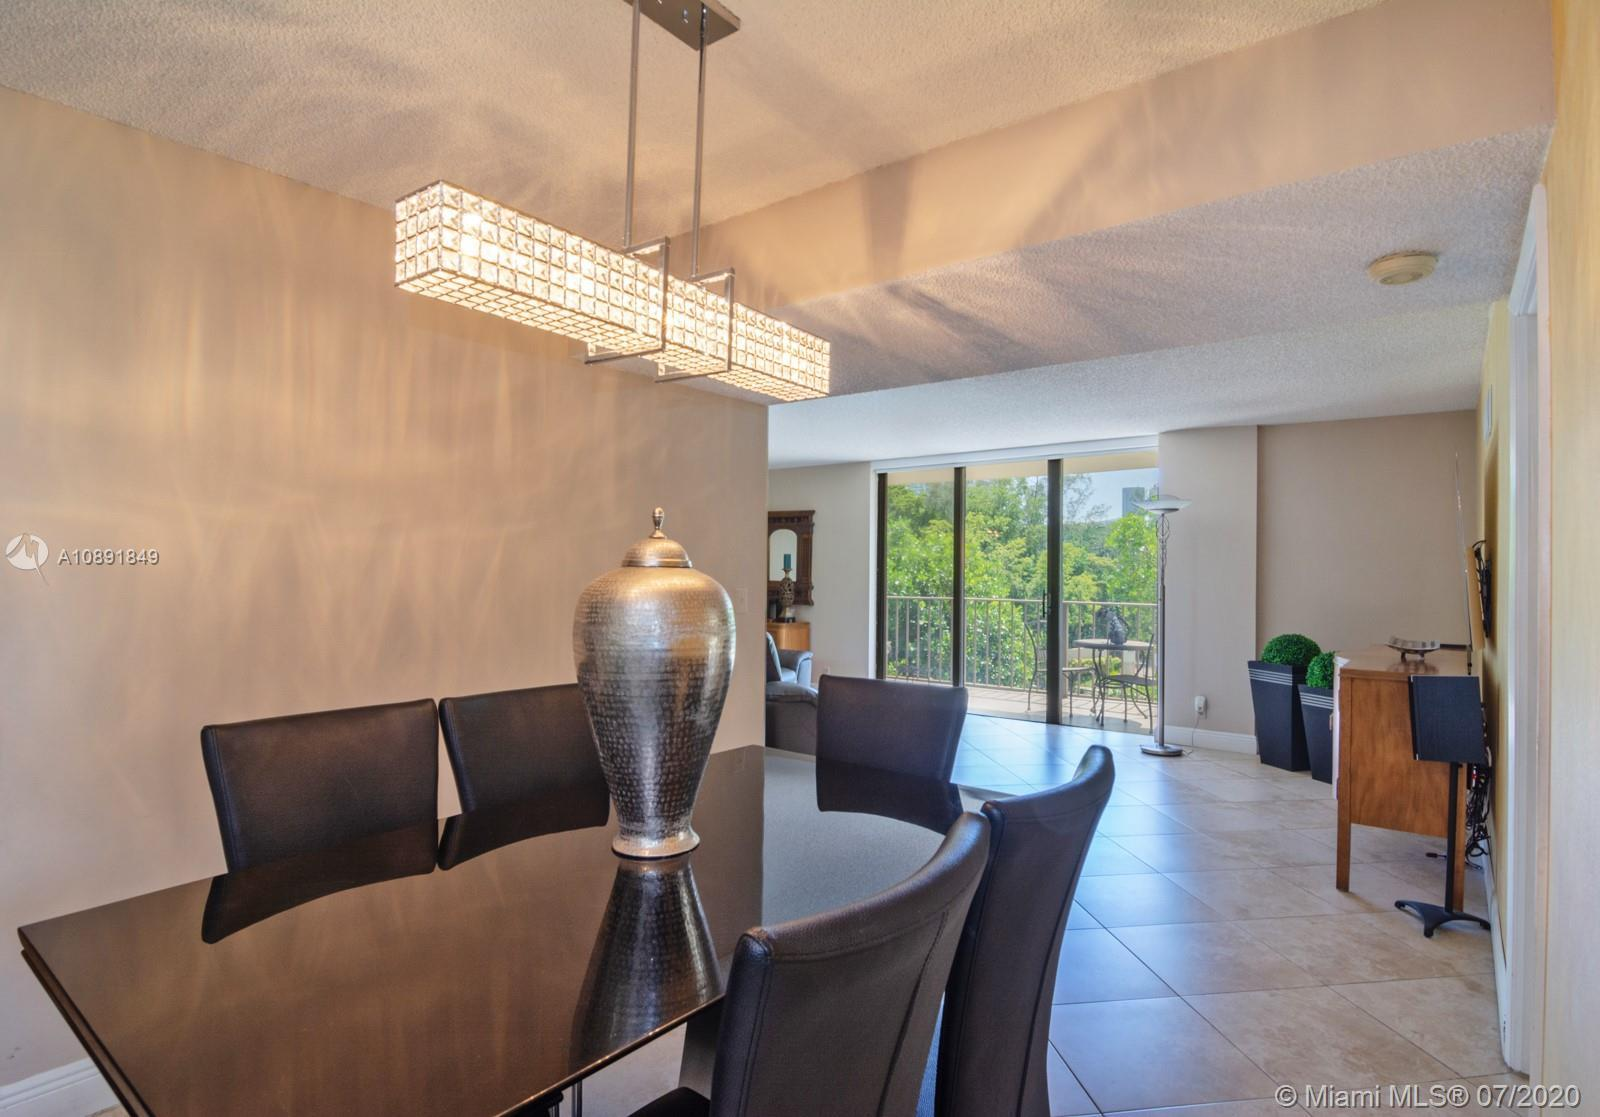 Easy to Show. Motivated Seller. Welcome to this Fully Upgraded 2 Bed/2 Bath Condo in the Heart of Av